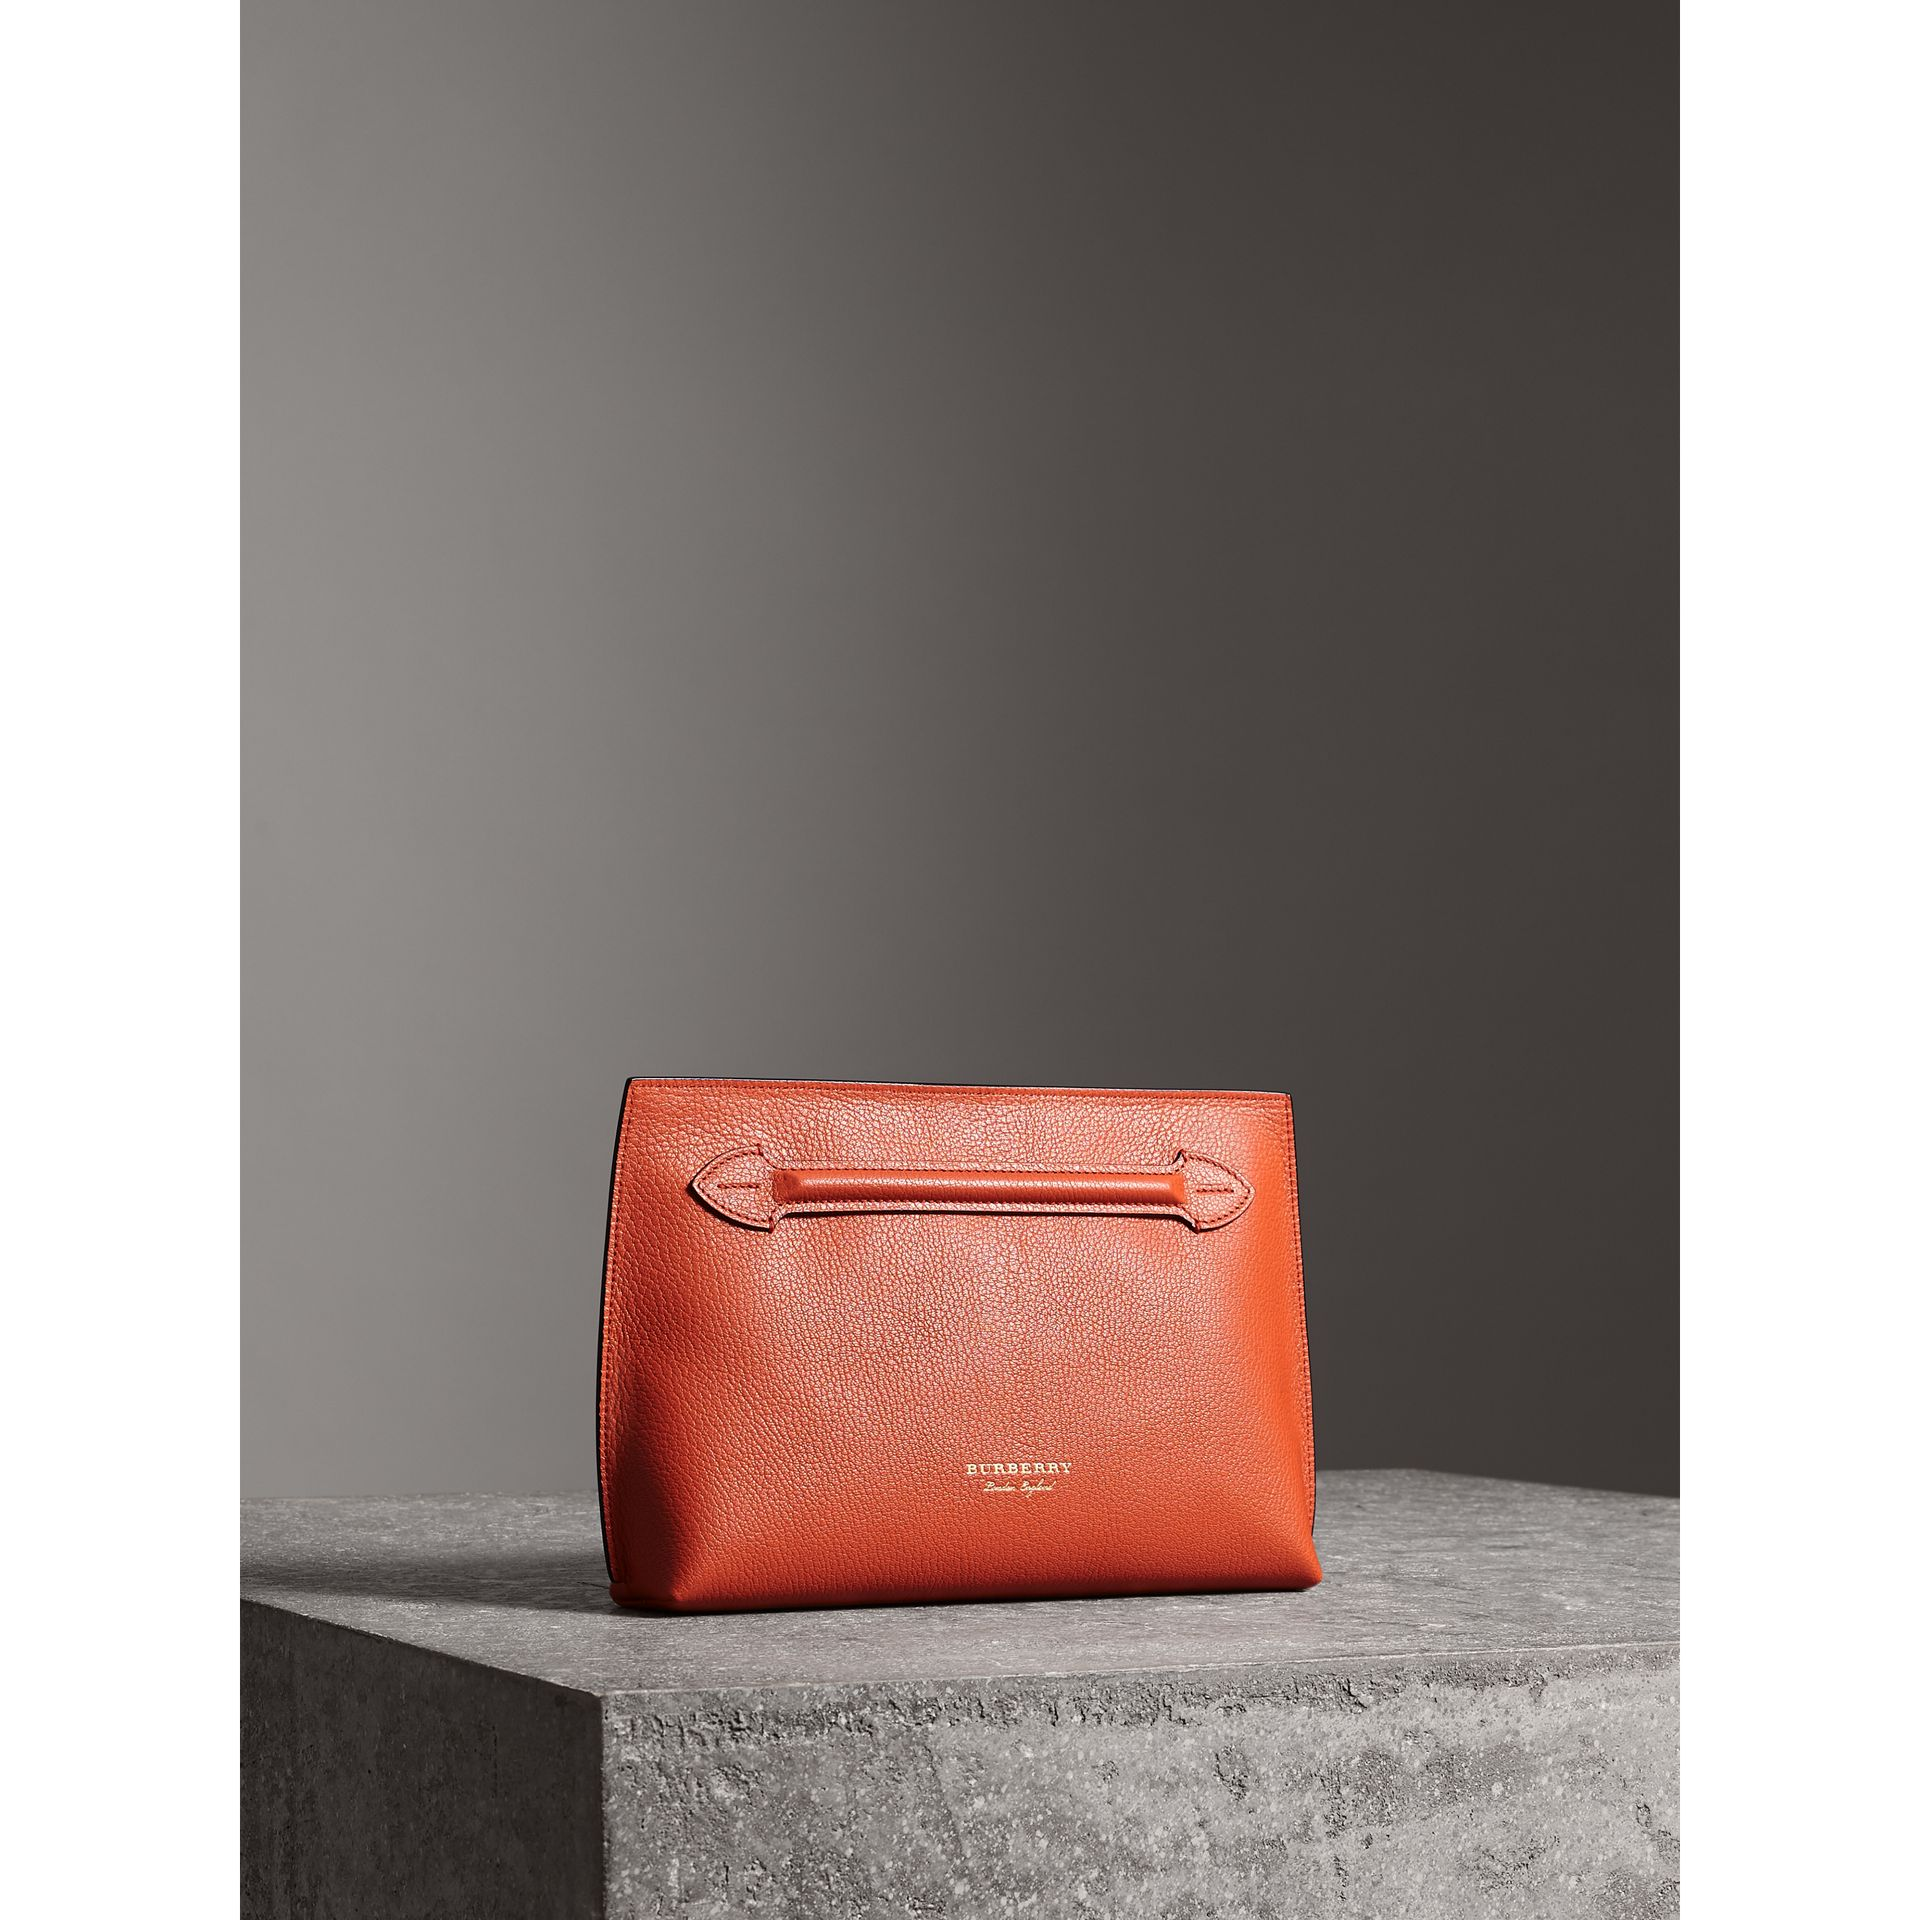 Grainy Leather Wristlet Clutch in Clementine - Women | Burberry Singapore - gallery image 8